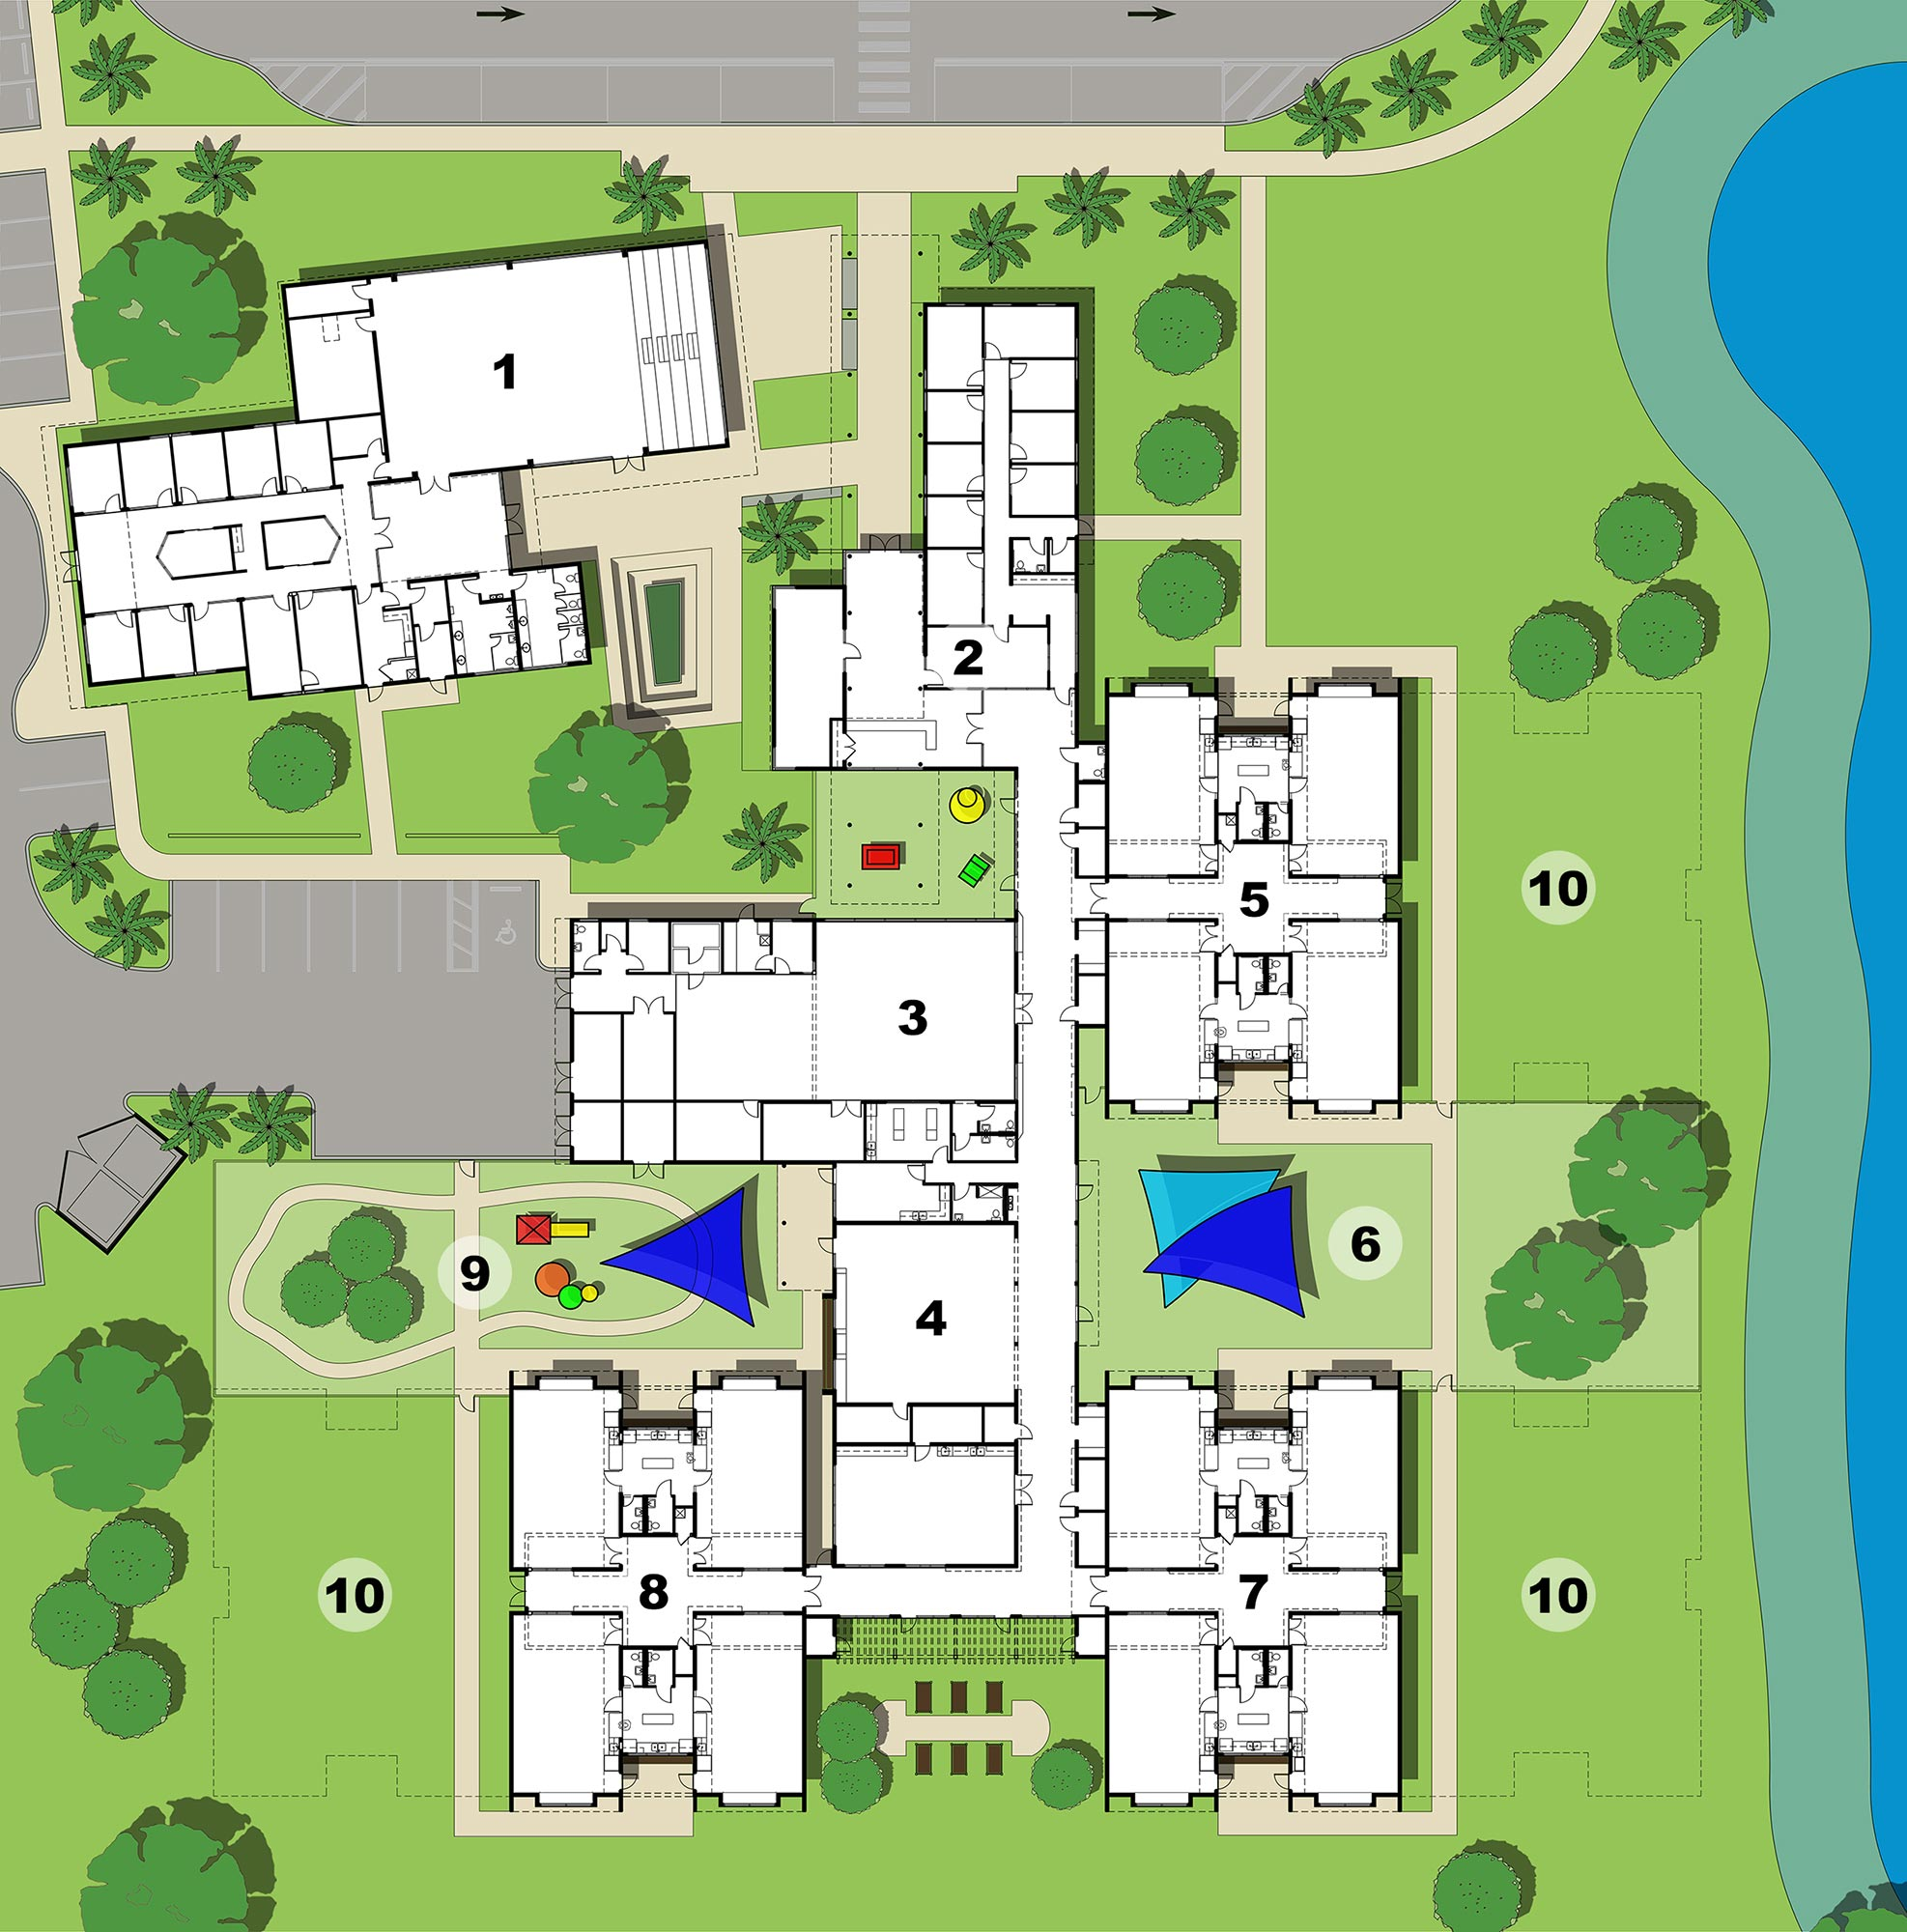 Site plan of campus showing all buildings and how they relate